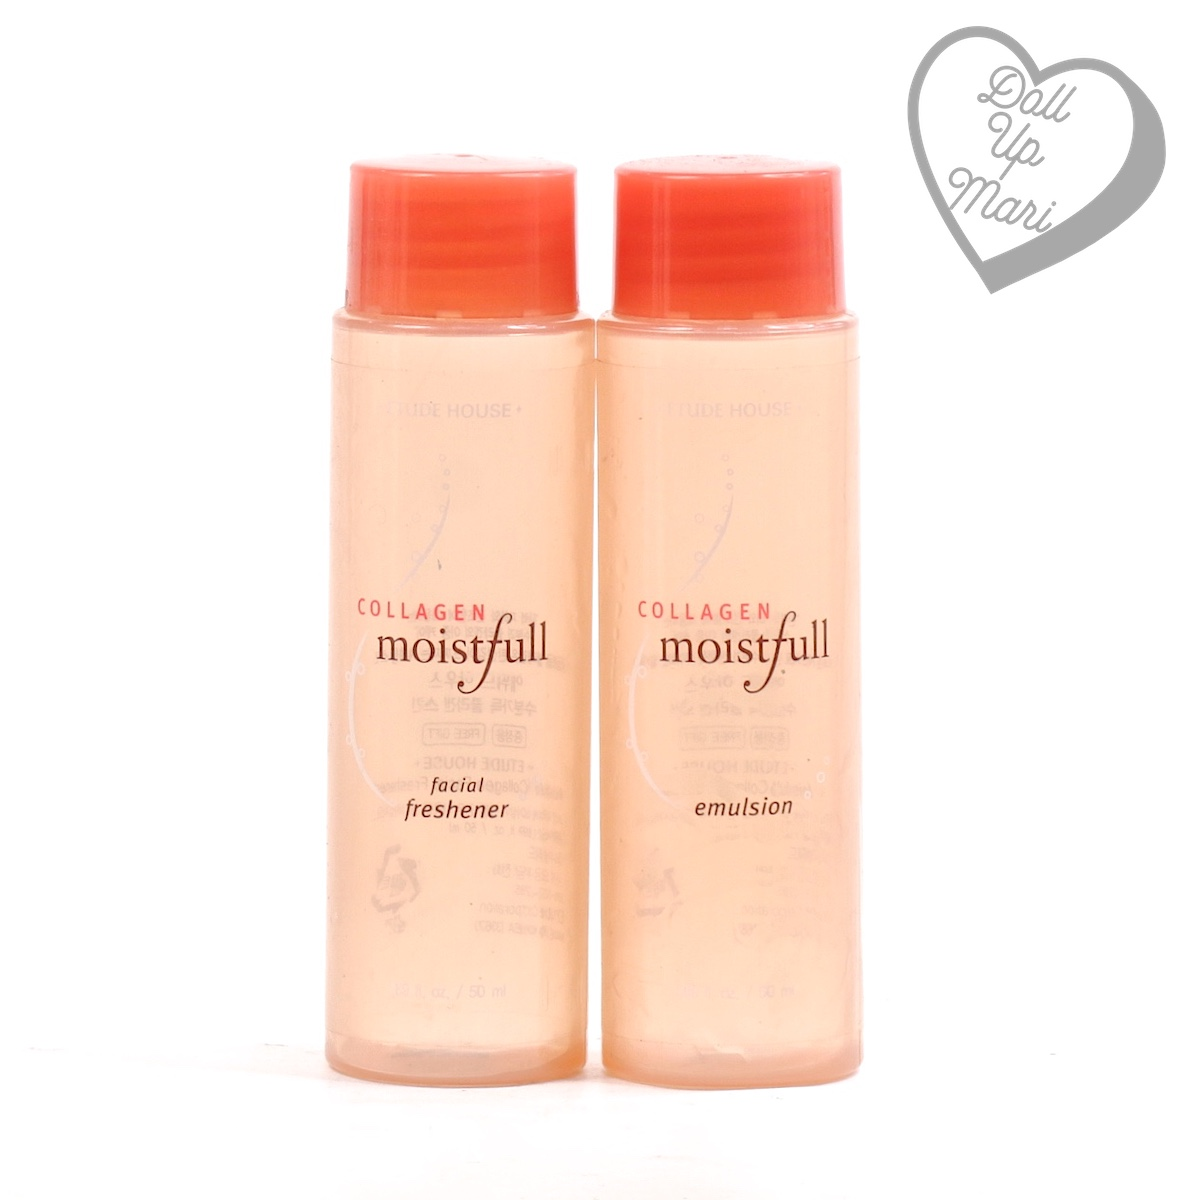 Etude House Moistfull Collagen Freshener and Emulsion